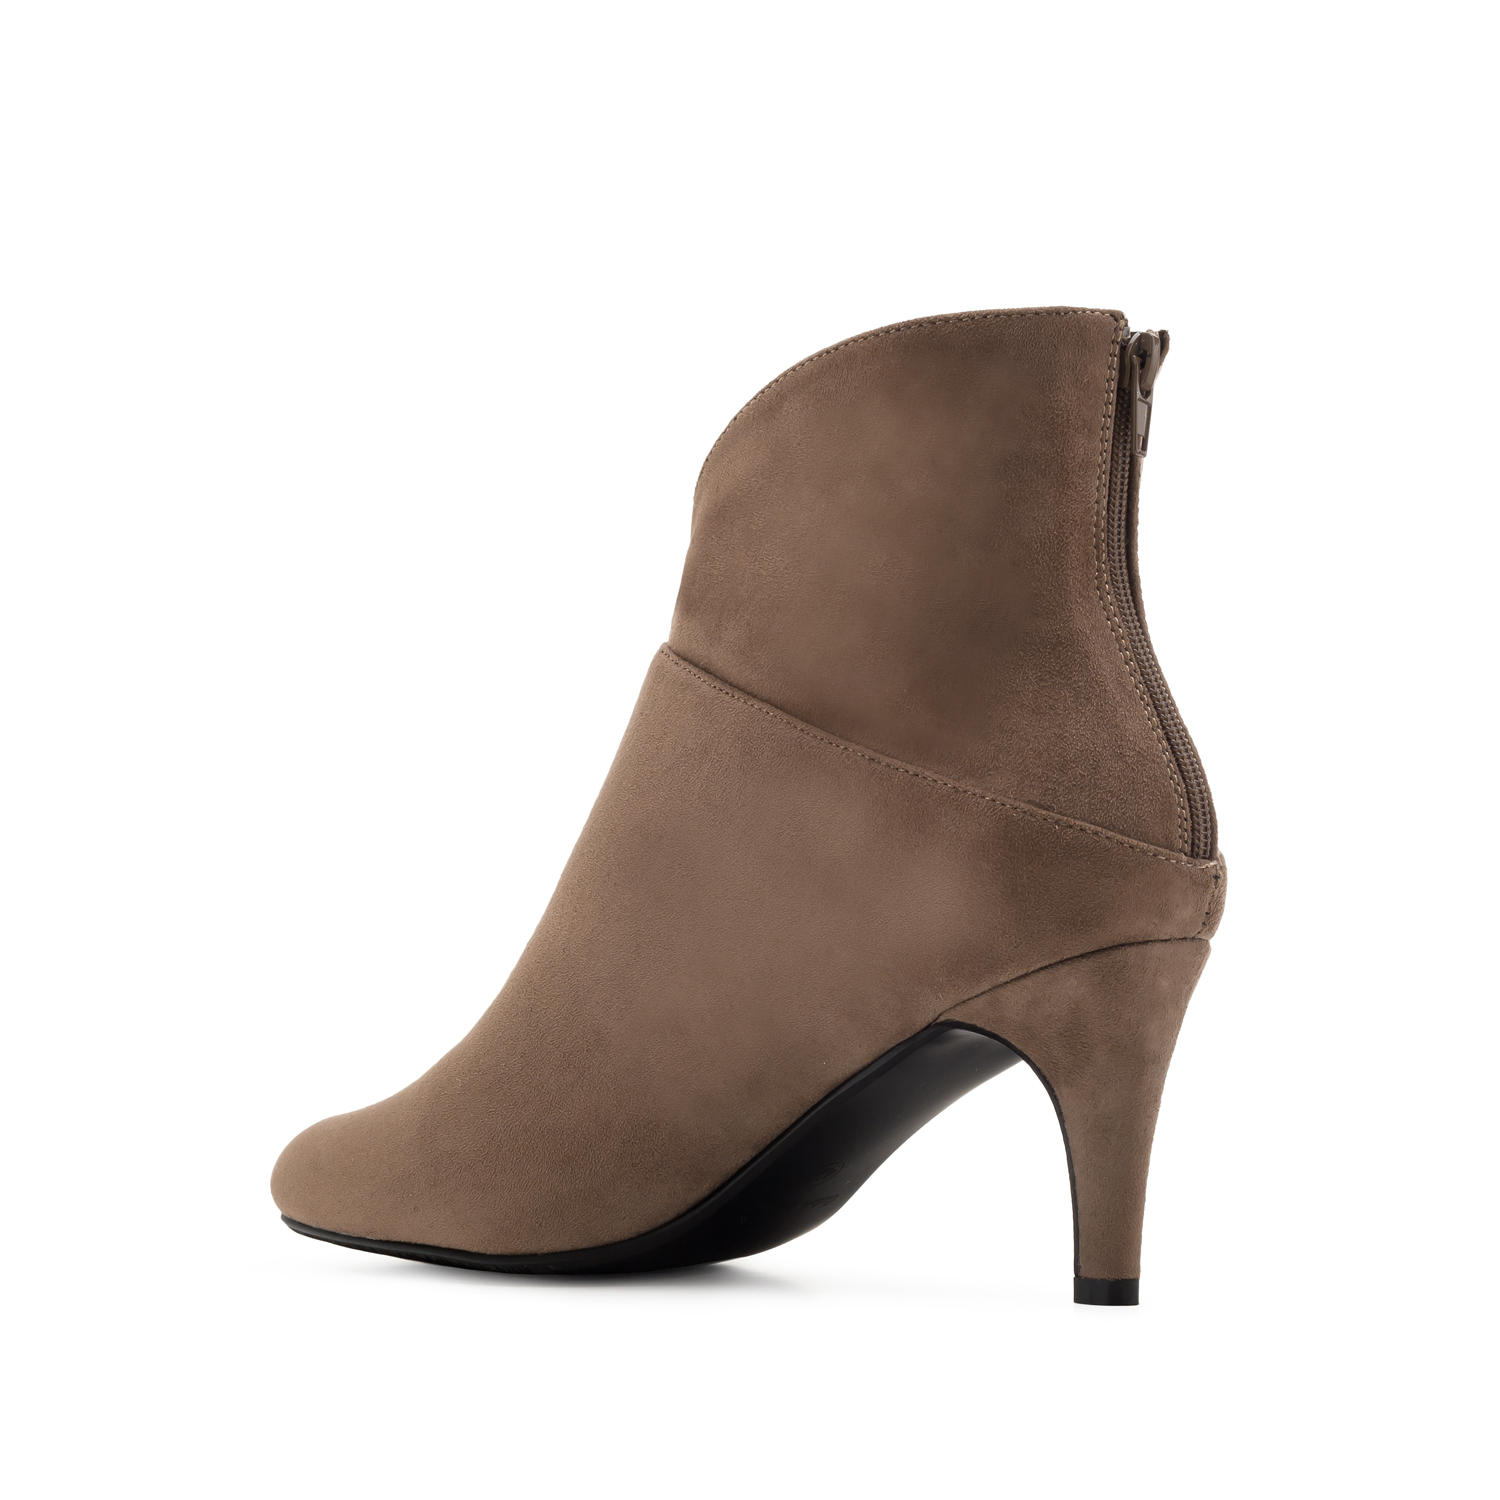 Bottines suèdine couleur Camel